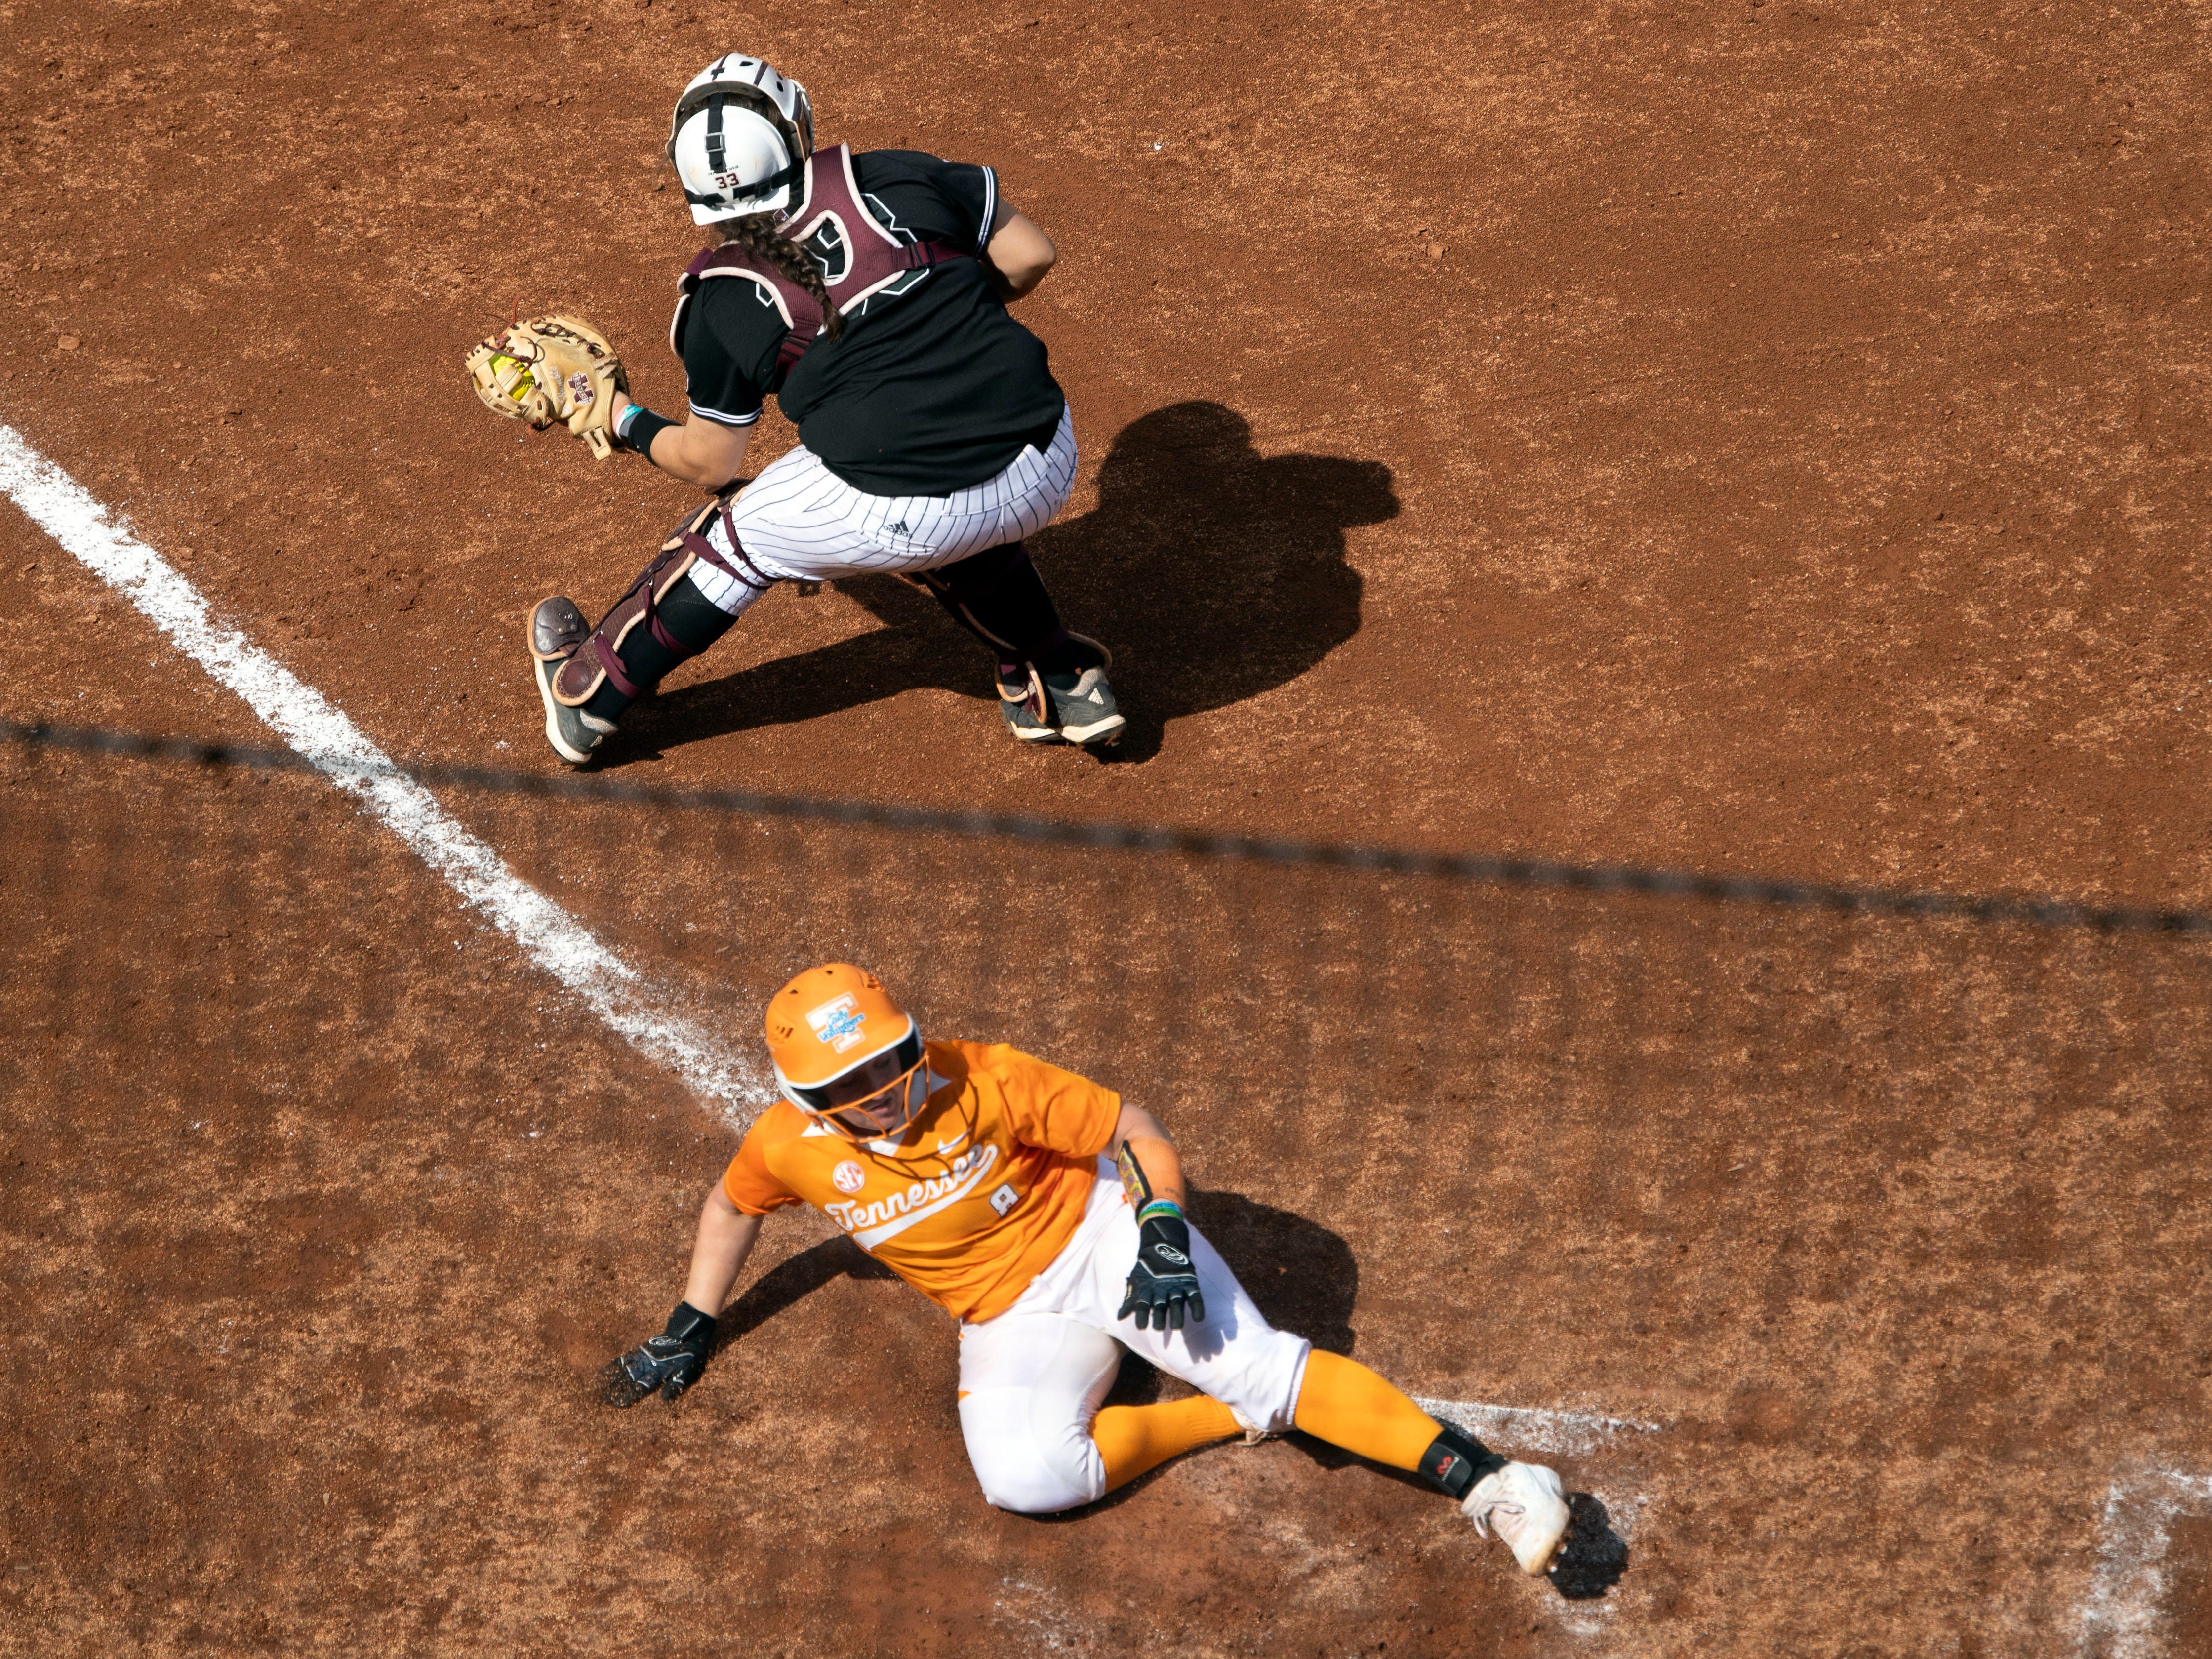 Tennessee's Kaili Phillips (8) slides home for the run against Mississippi State at Sherri Parker Lee Stadium on Sunday, April 14, 2019.